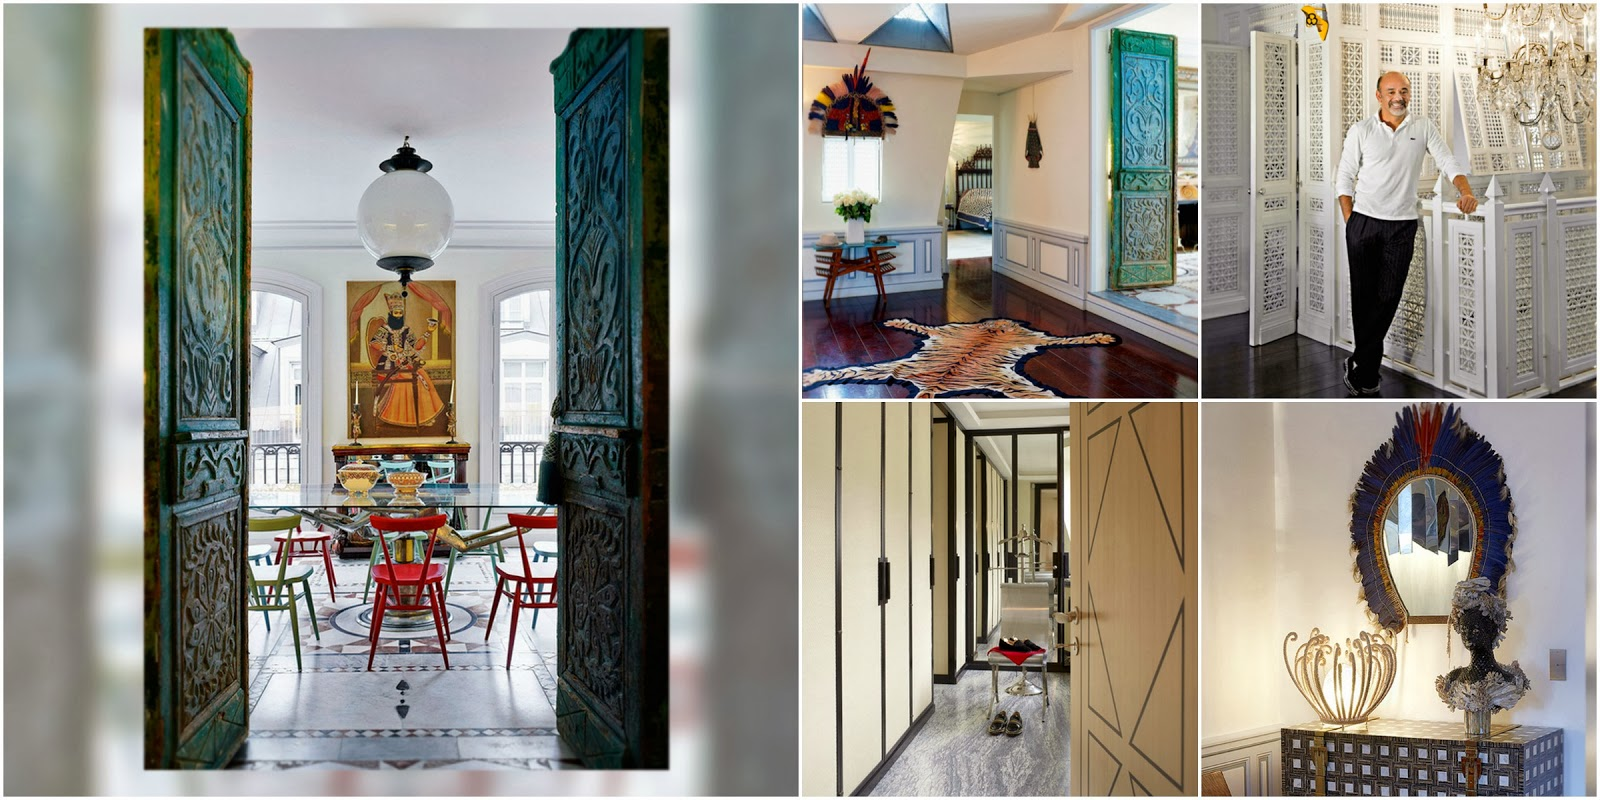 Best of 2013, La casa de Christian Louboutin, house, home, tour